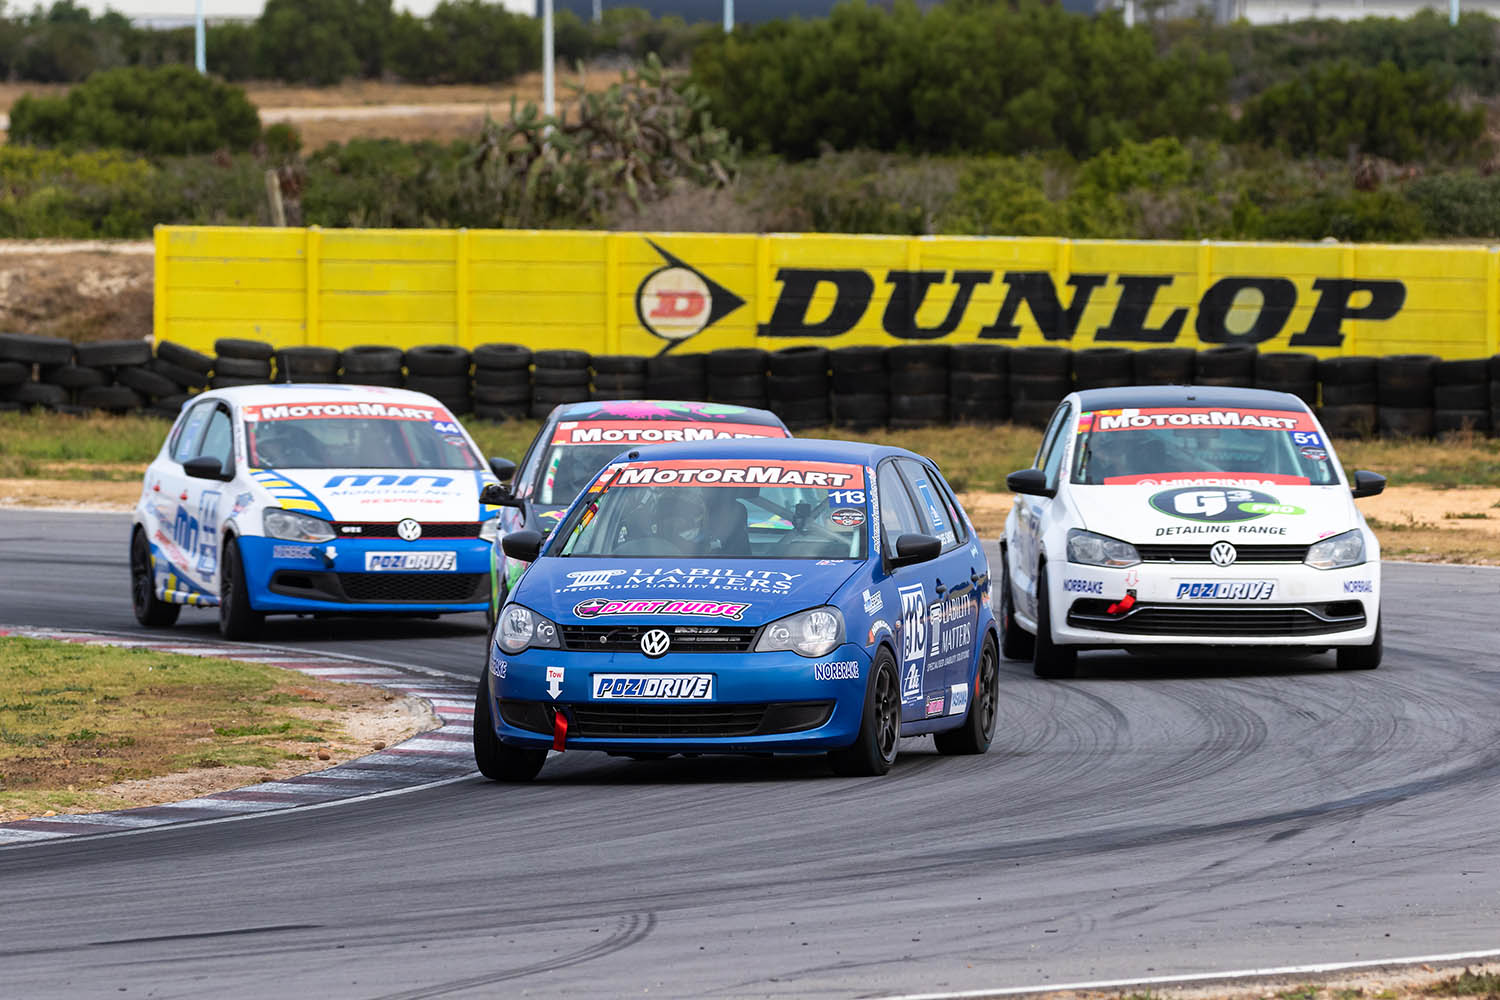 Jacques Smith leads the Class B pack